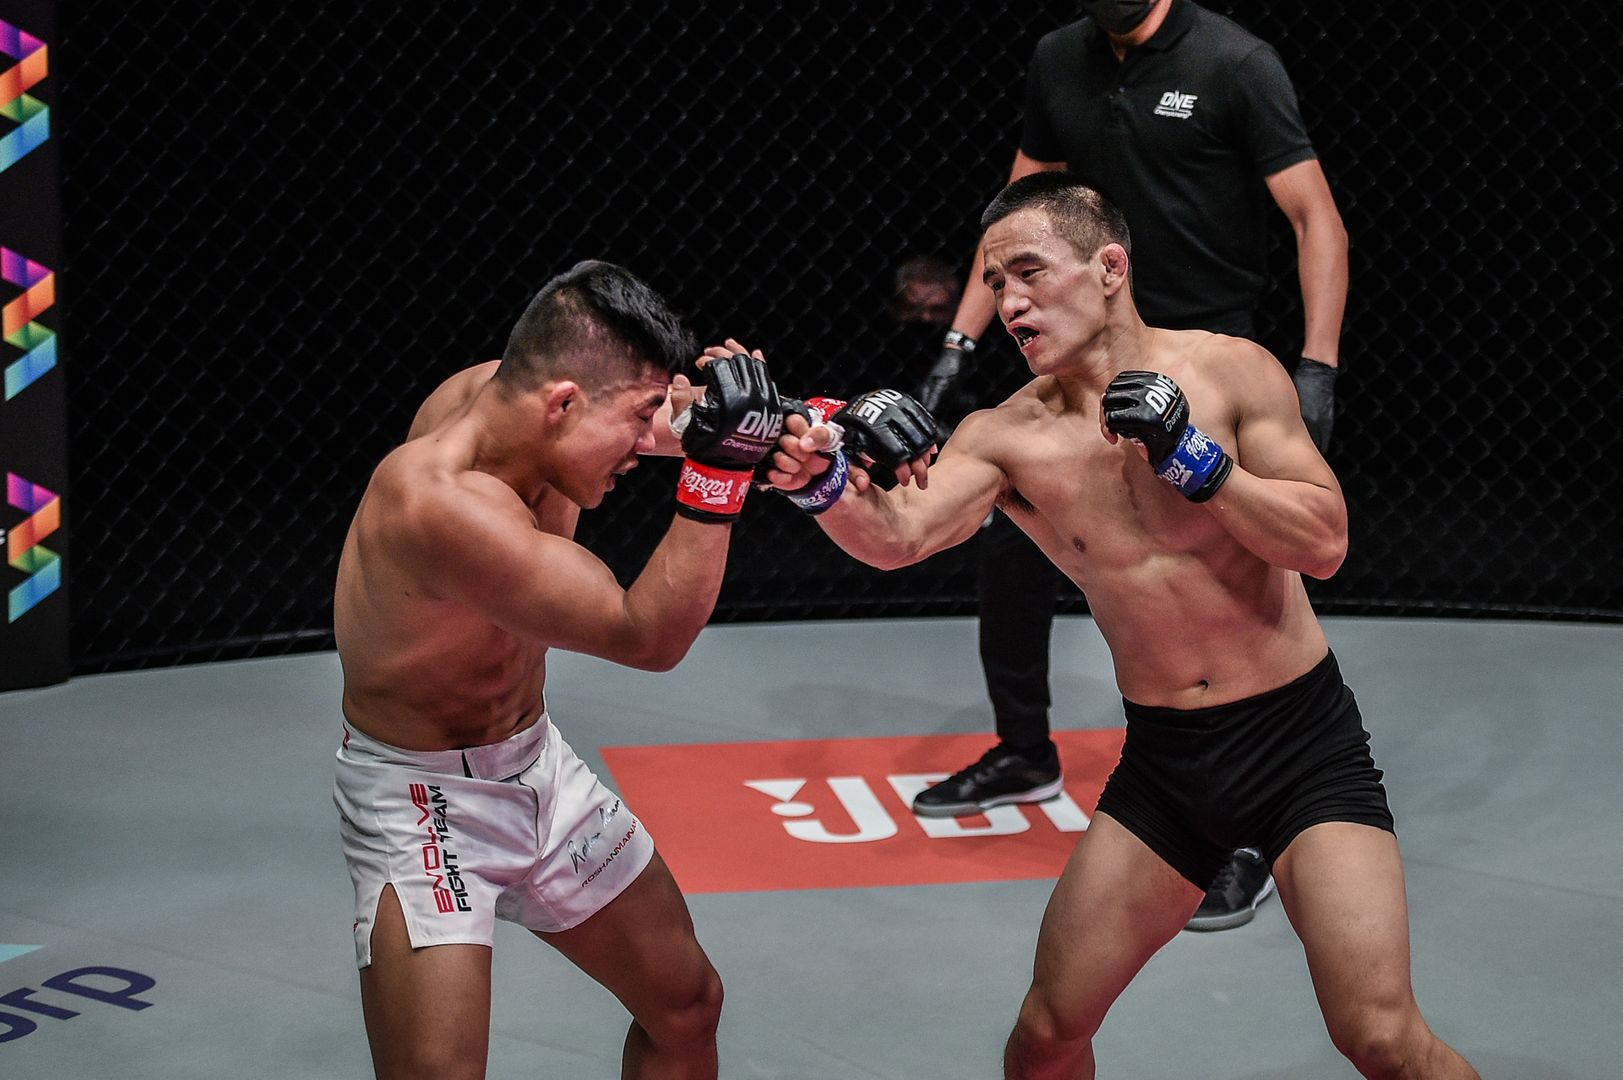 Live action shots of MMA fighters Roshan Mainam and Liu Peng Shuai from ONE: REIGN OF DYNASTIES on 9 October!